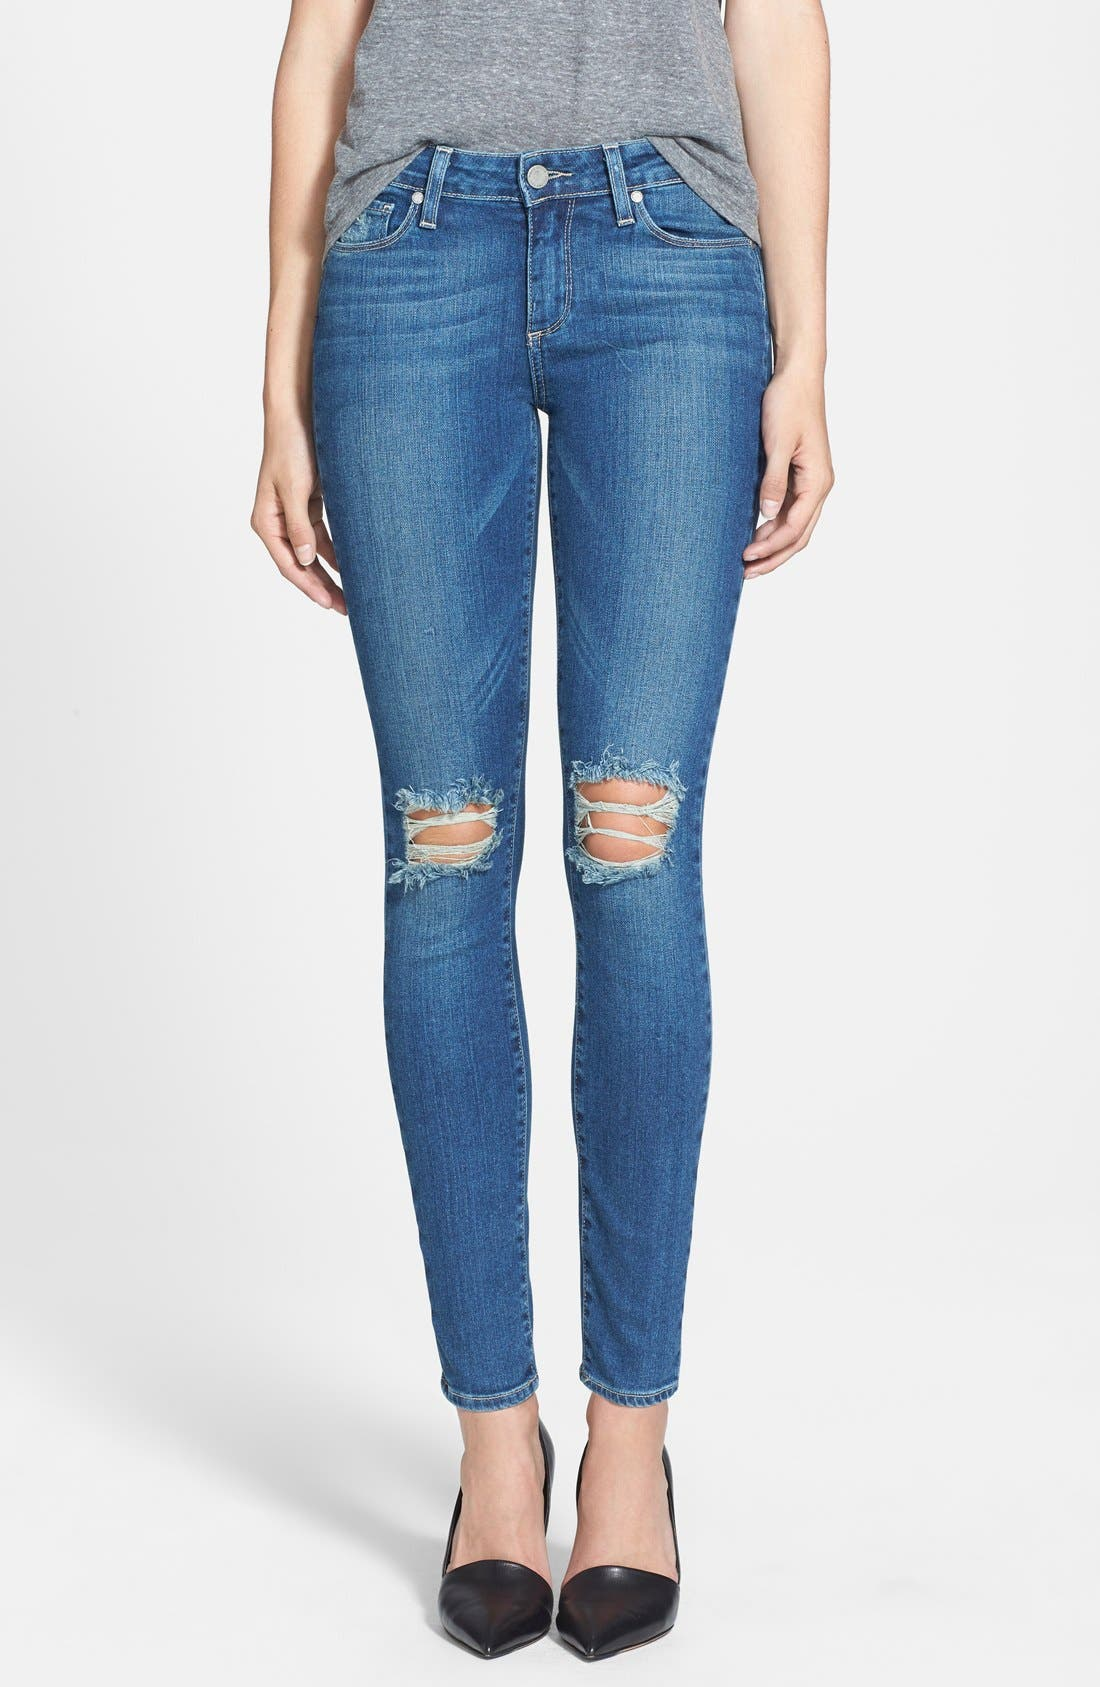 Alternate Image 1 Selected - Paige Denim 'Verdugo' Destroyed Ankle Skinny Jeans (Belmont)